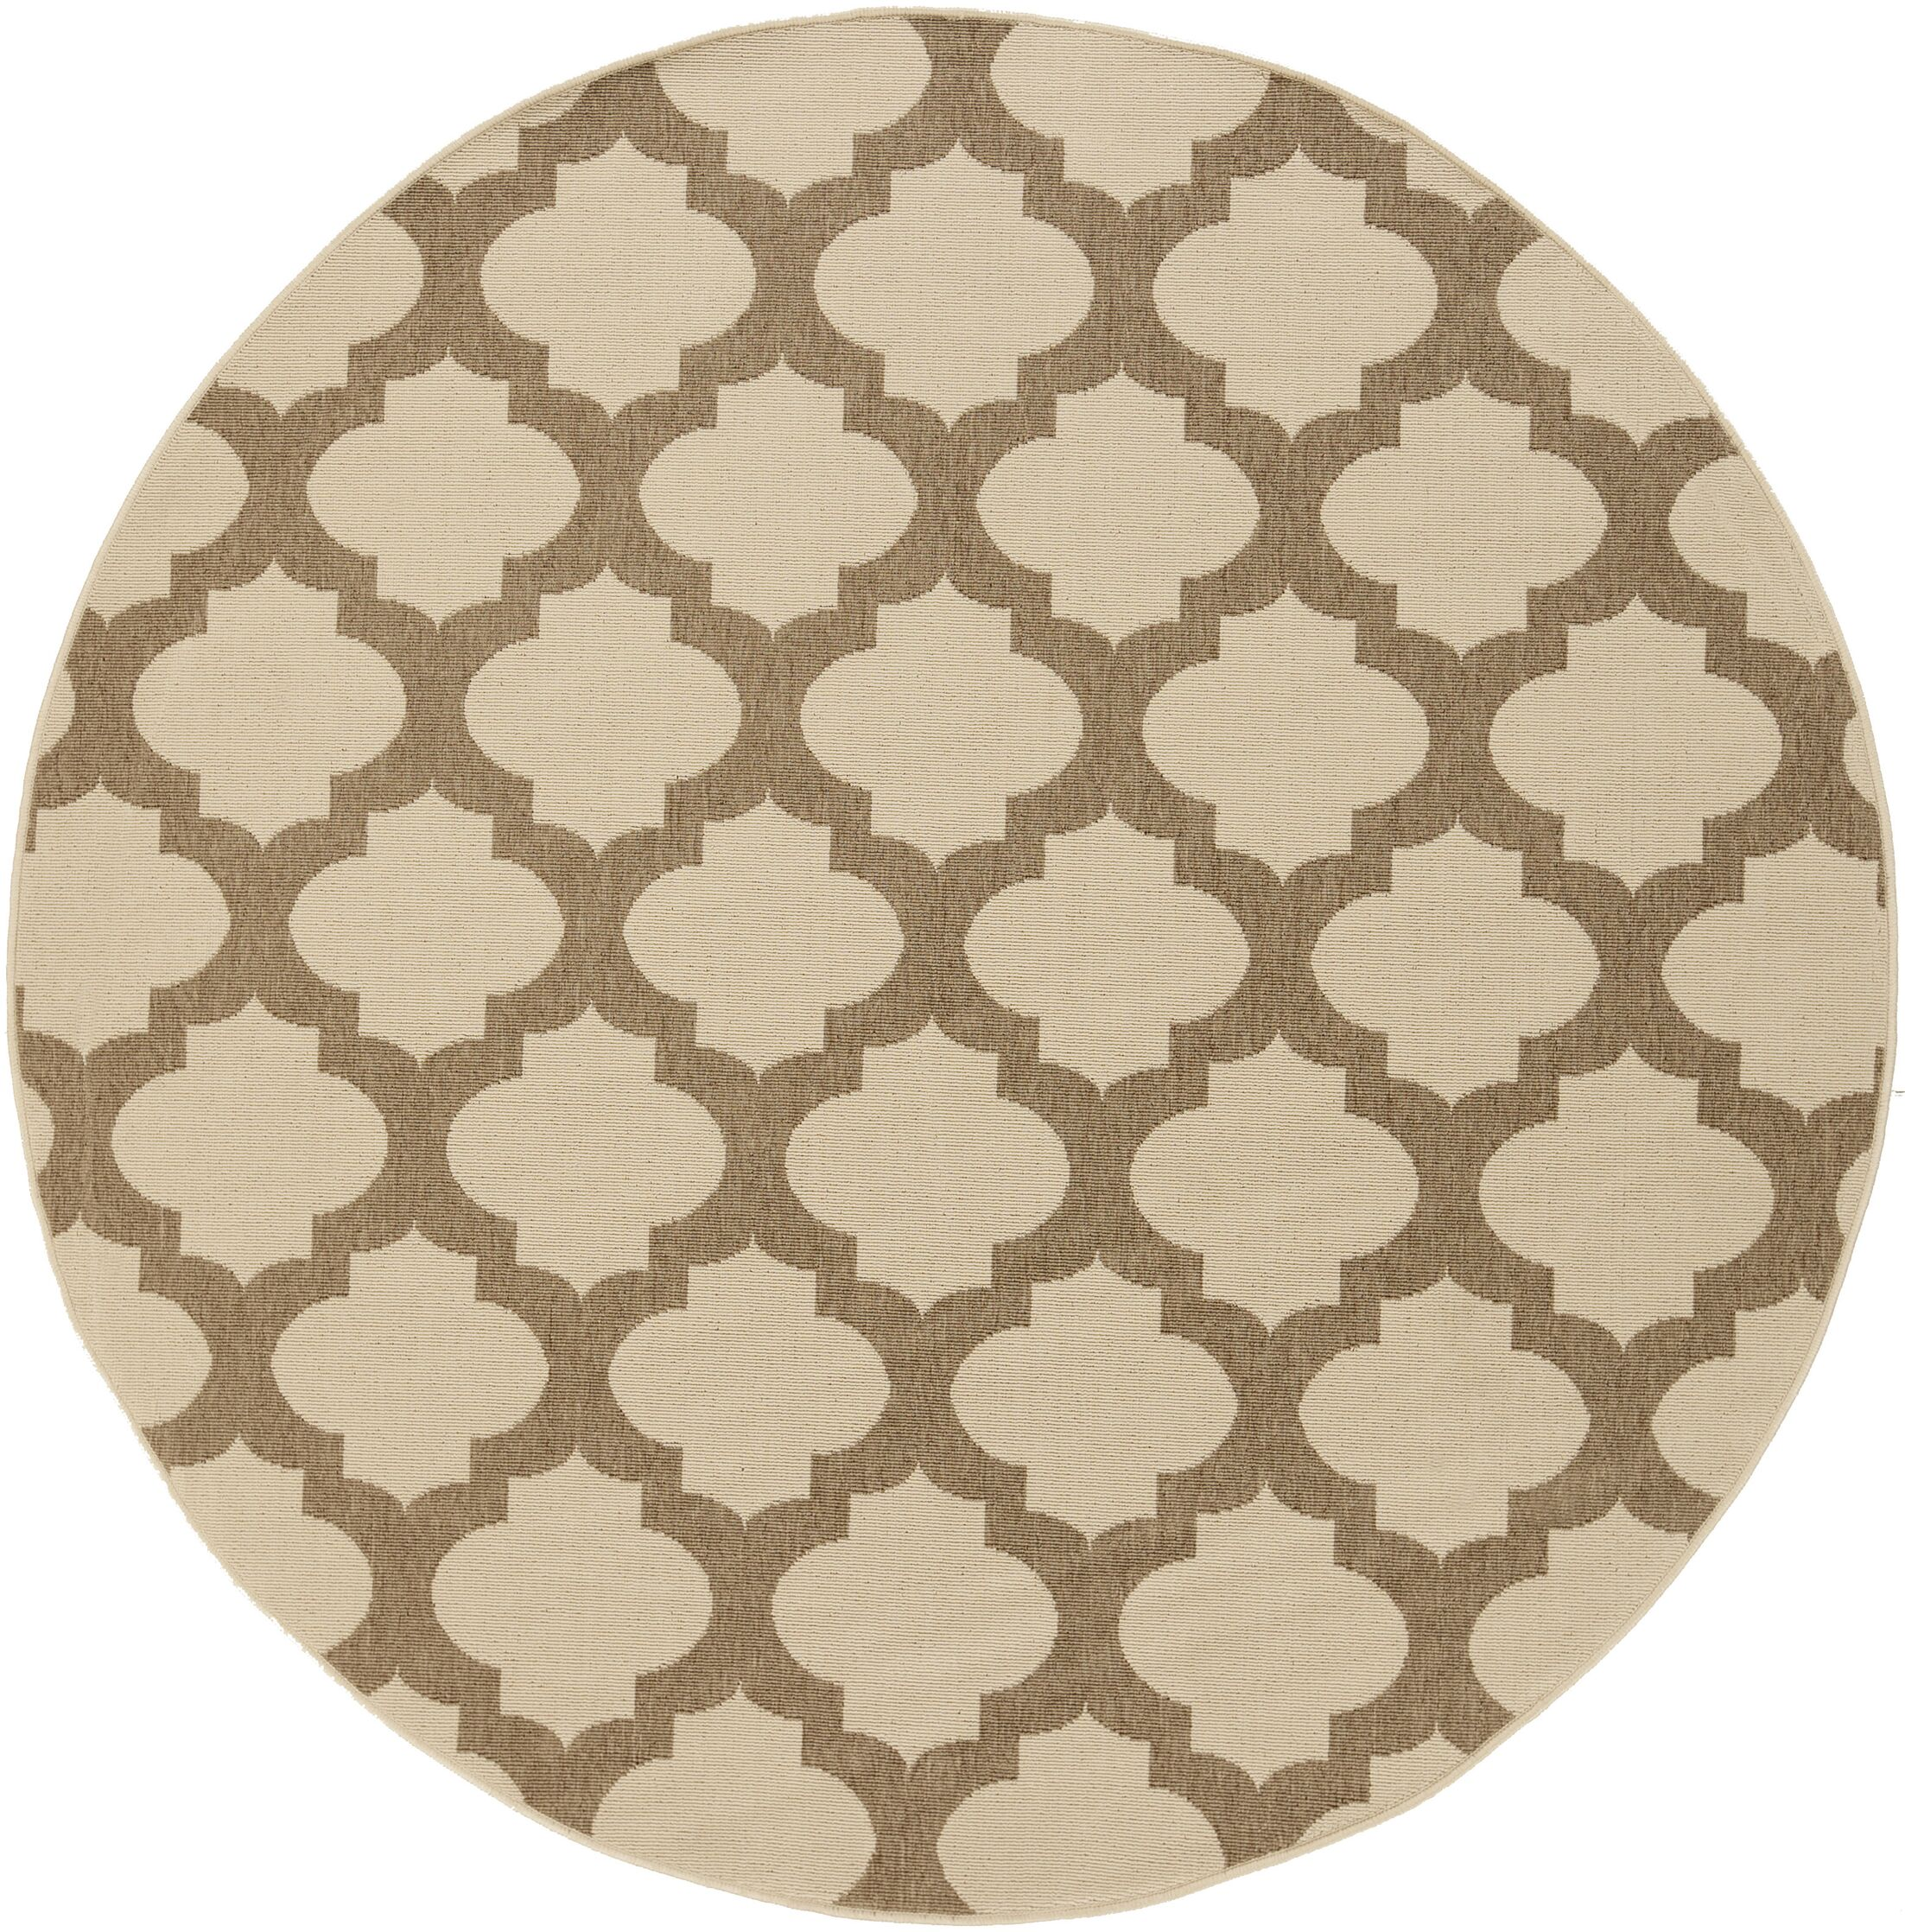 Odell Taupe Indoor/Outdoor Area Rug Rug Size: Round 8'9